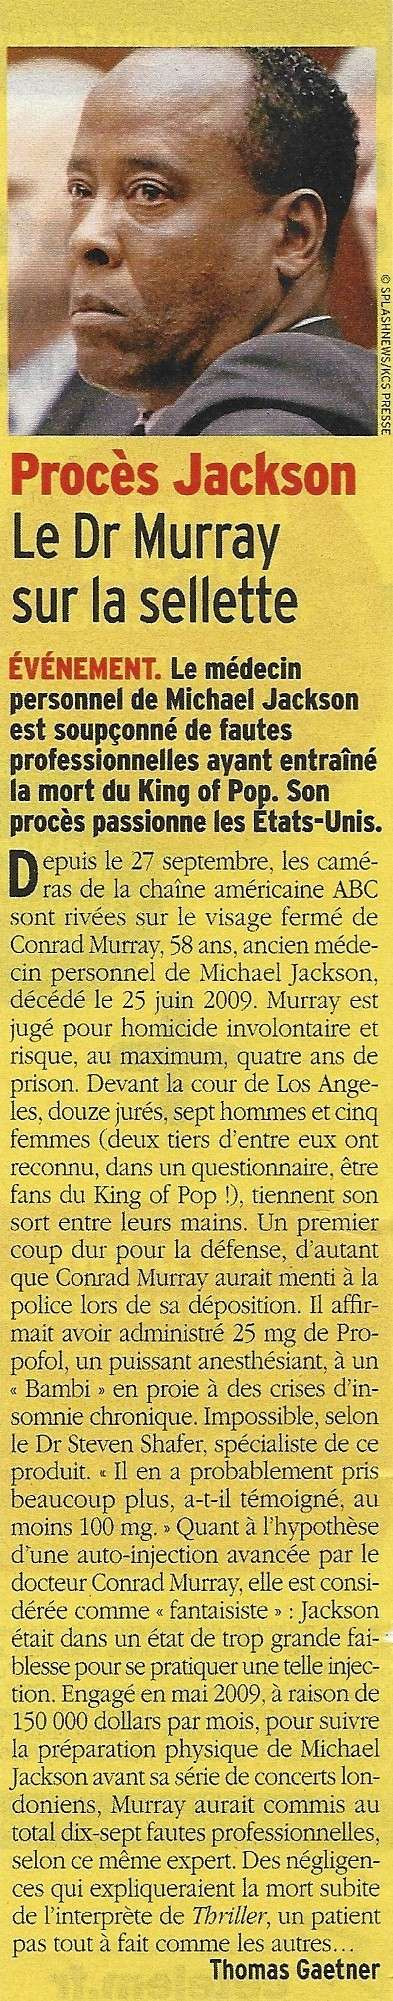 Le Dr Murray sur la sellette 10110